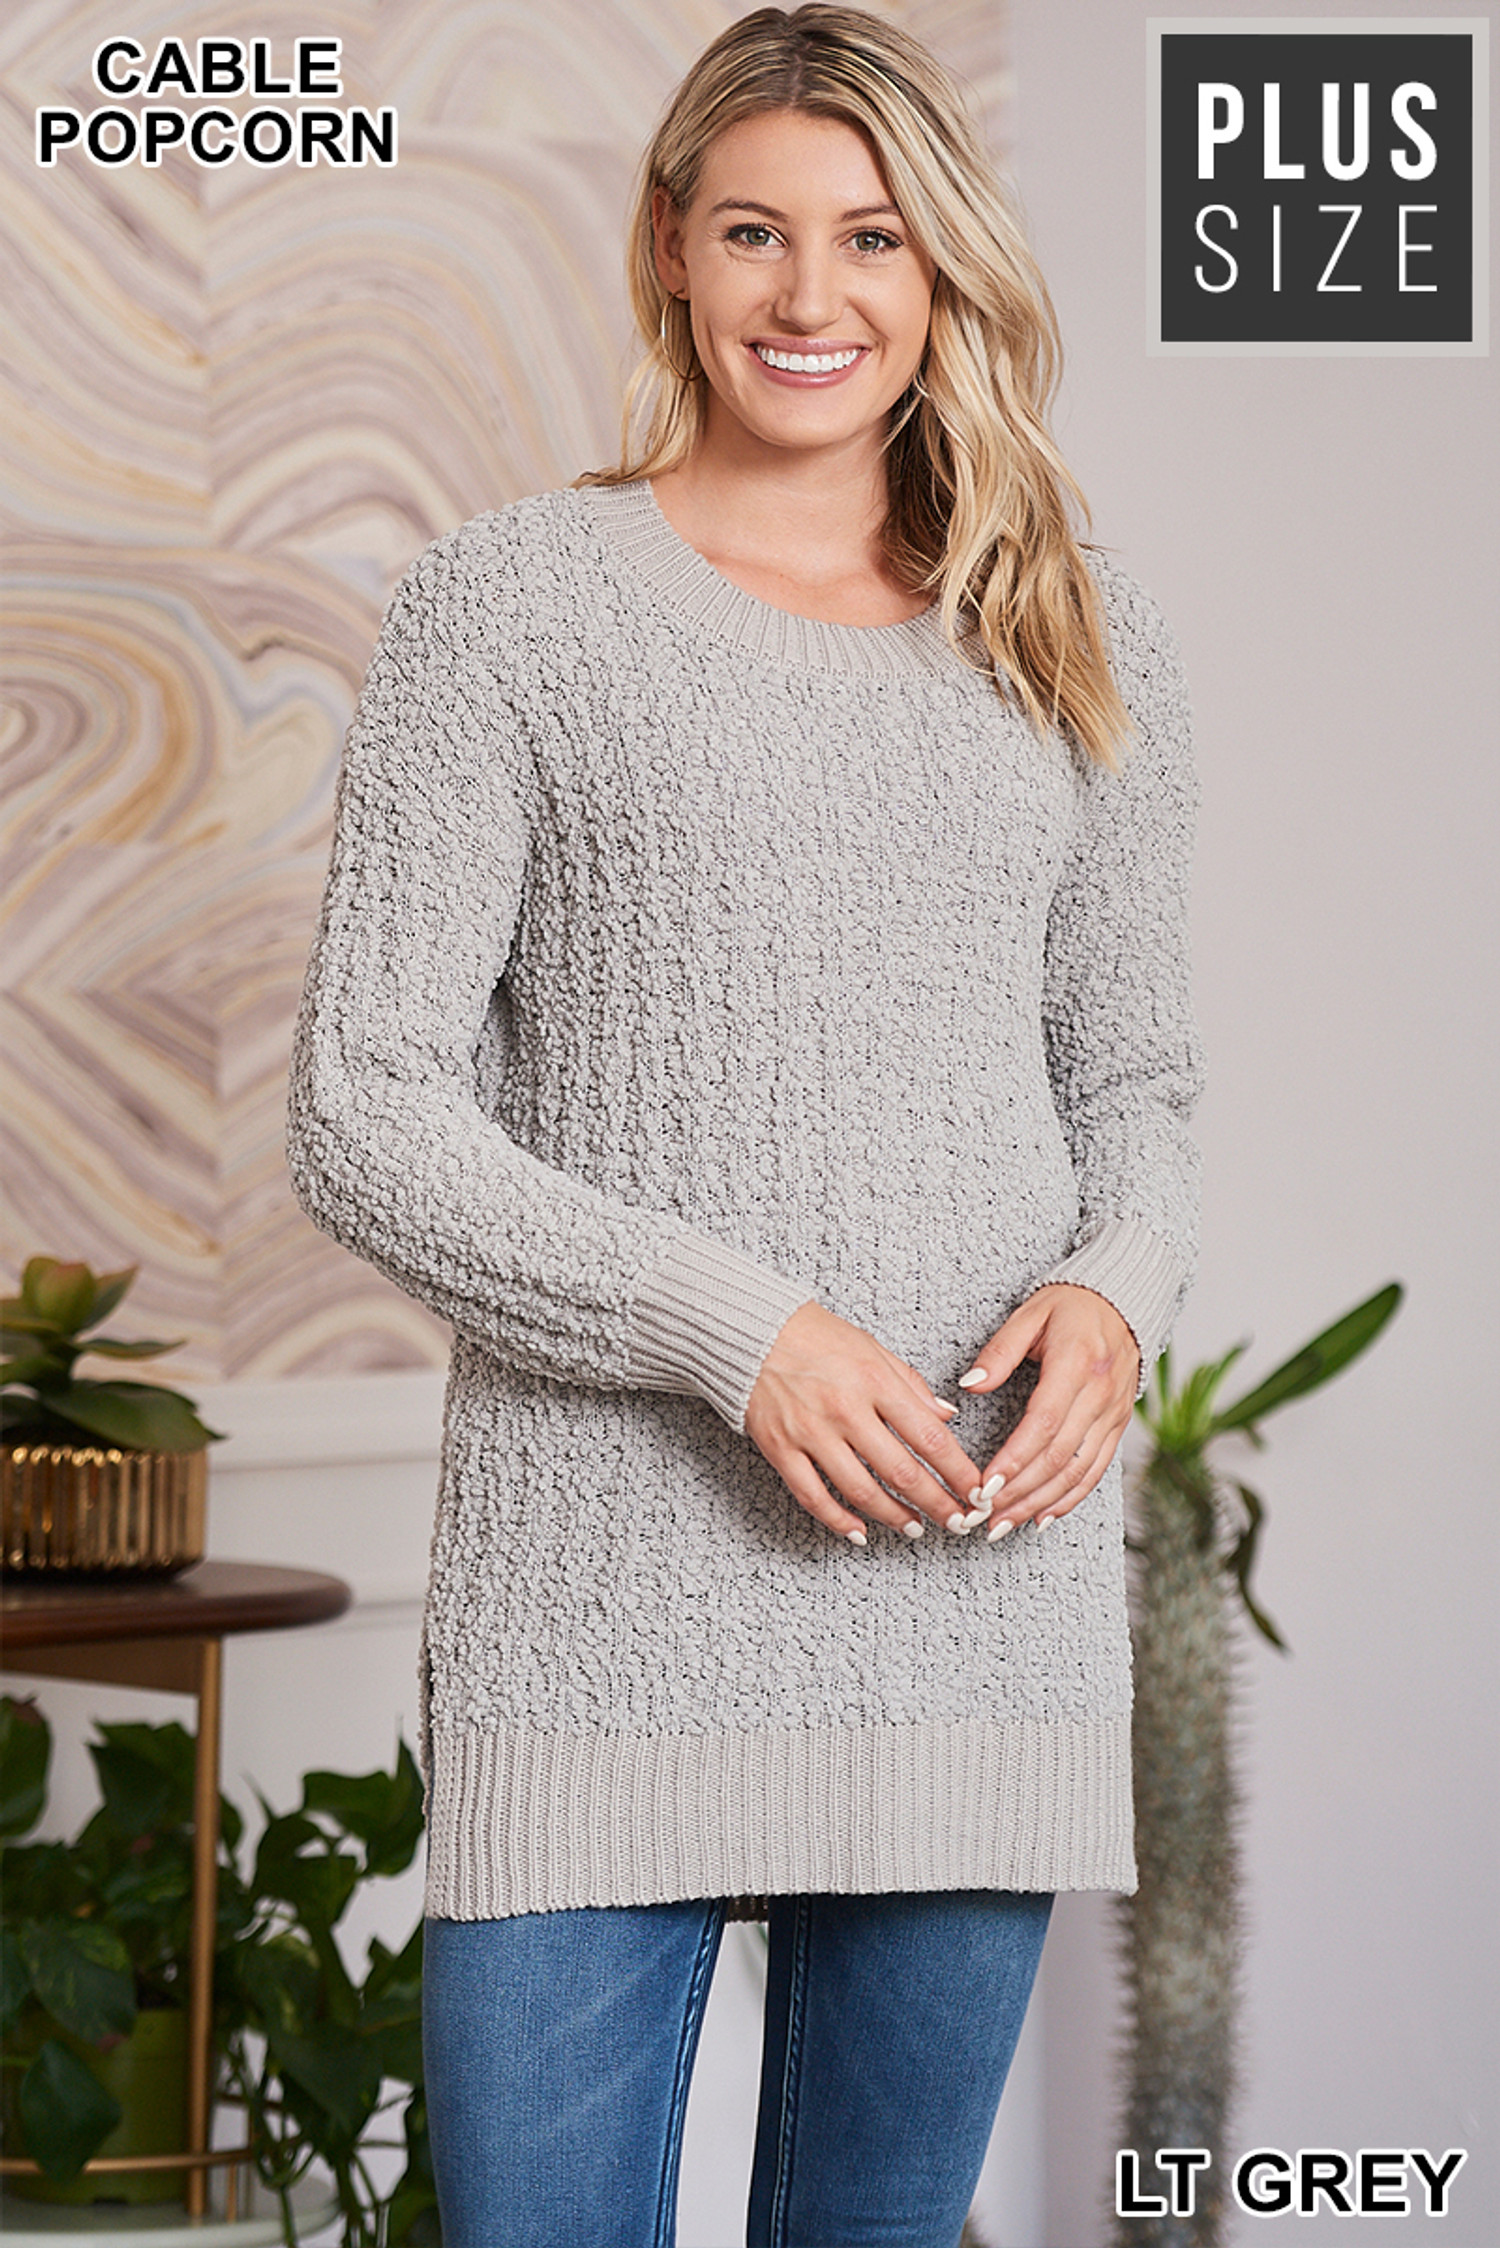 Front image of Light Grey Cable Knit Popcorn Round Neck Hi-Low Plus Size Sweater